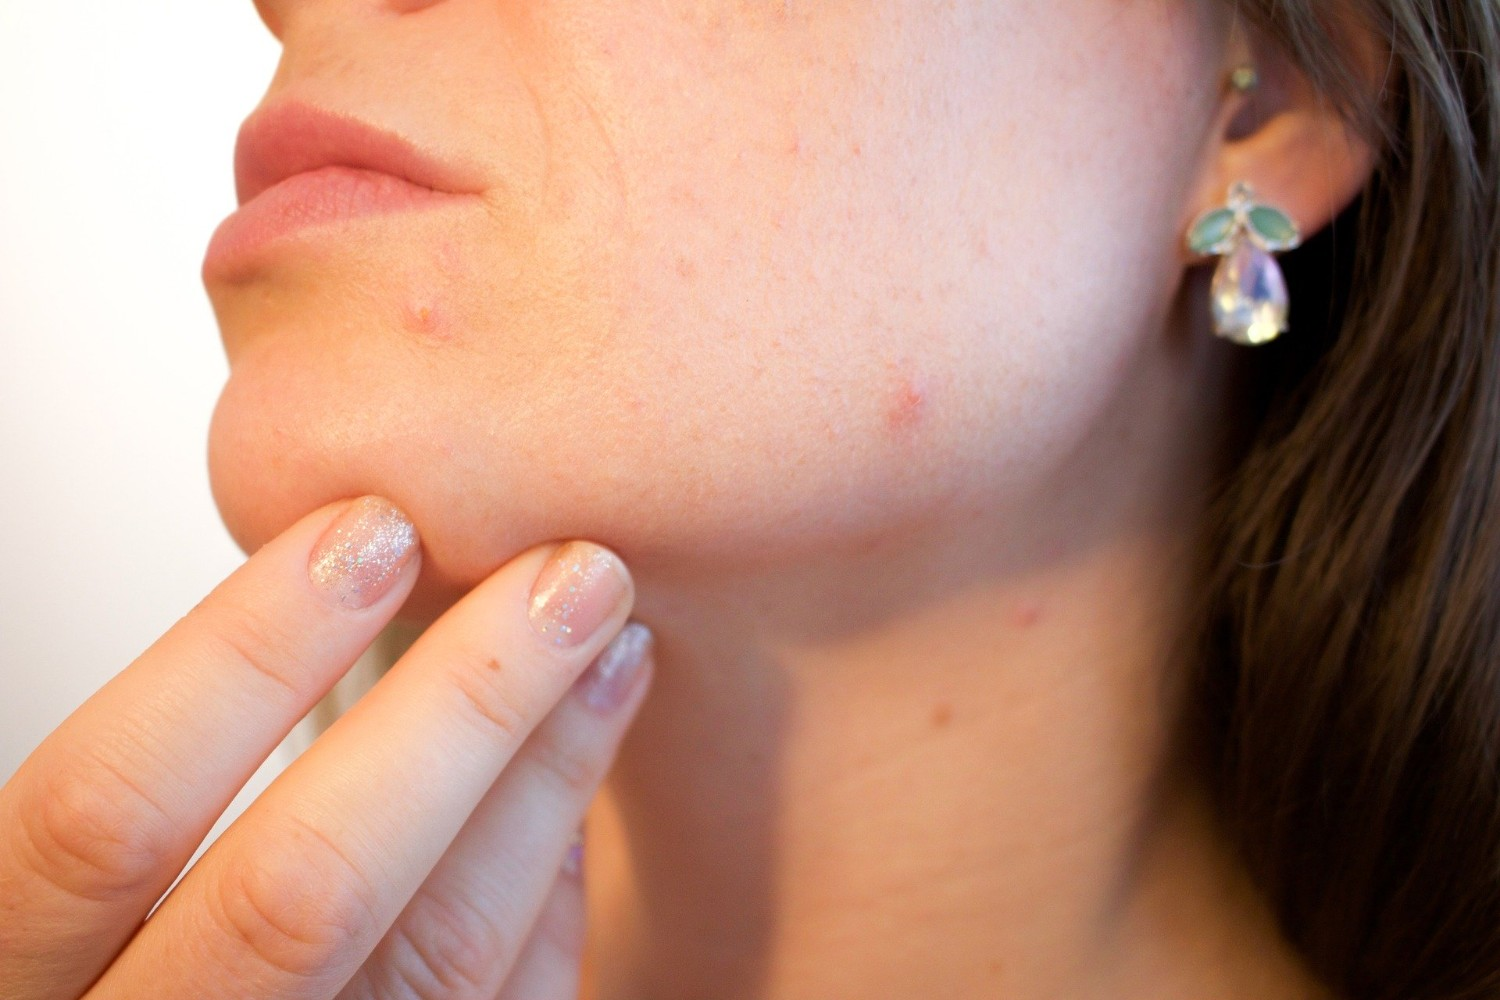 Woman's chin with acne